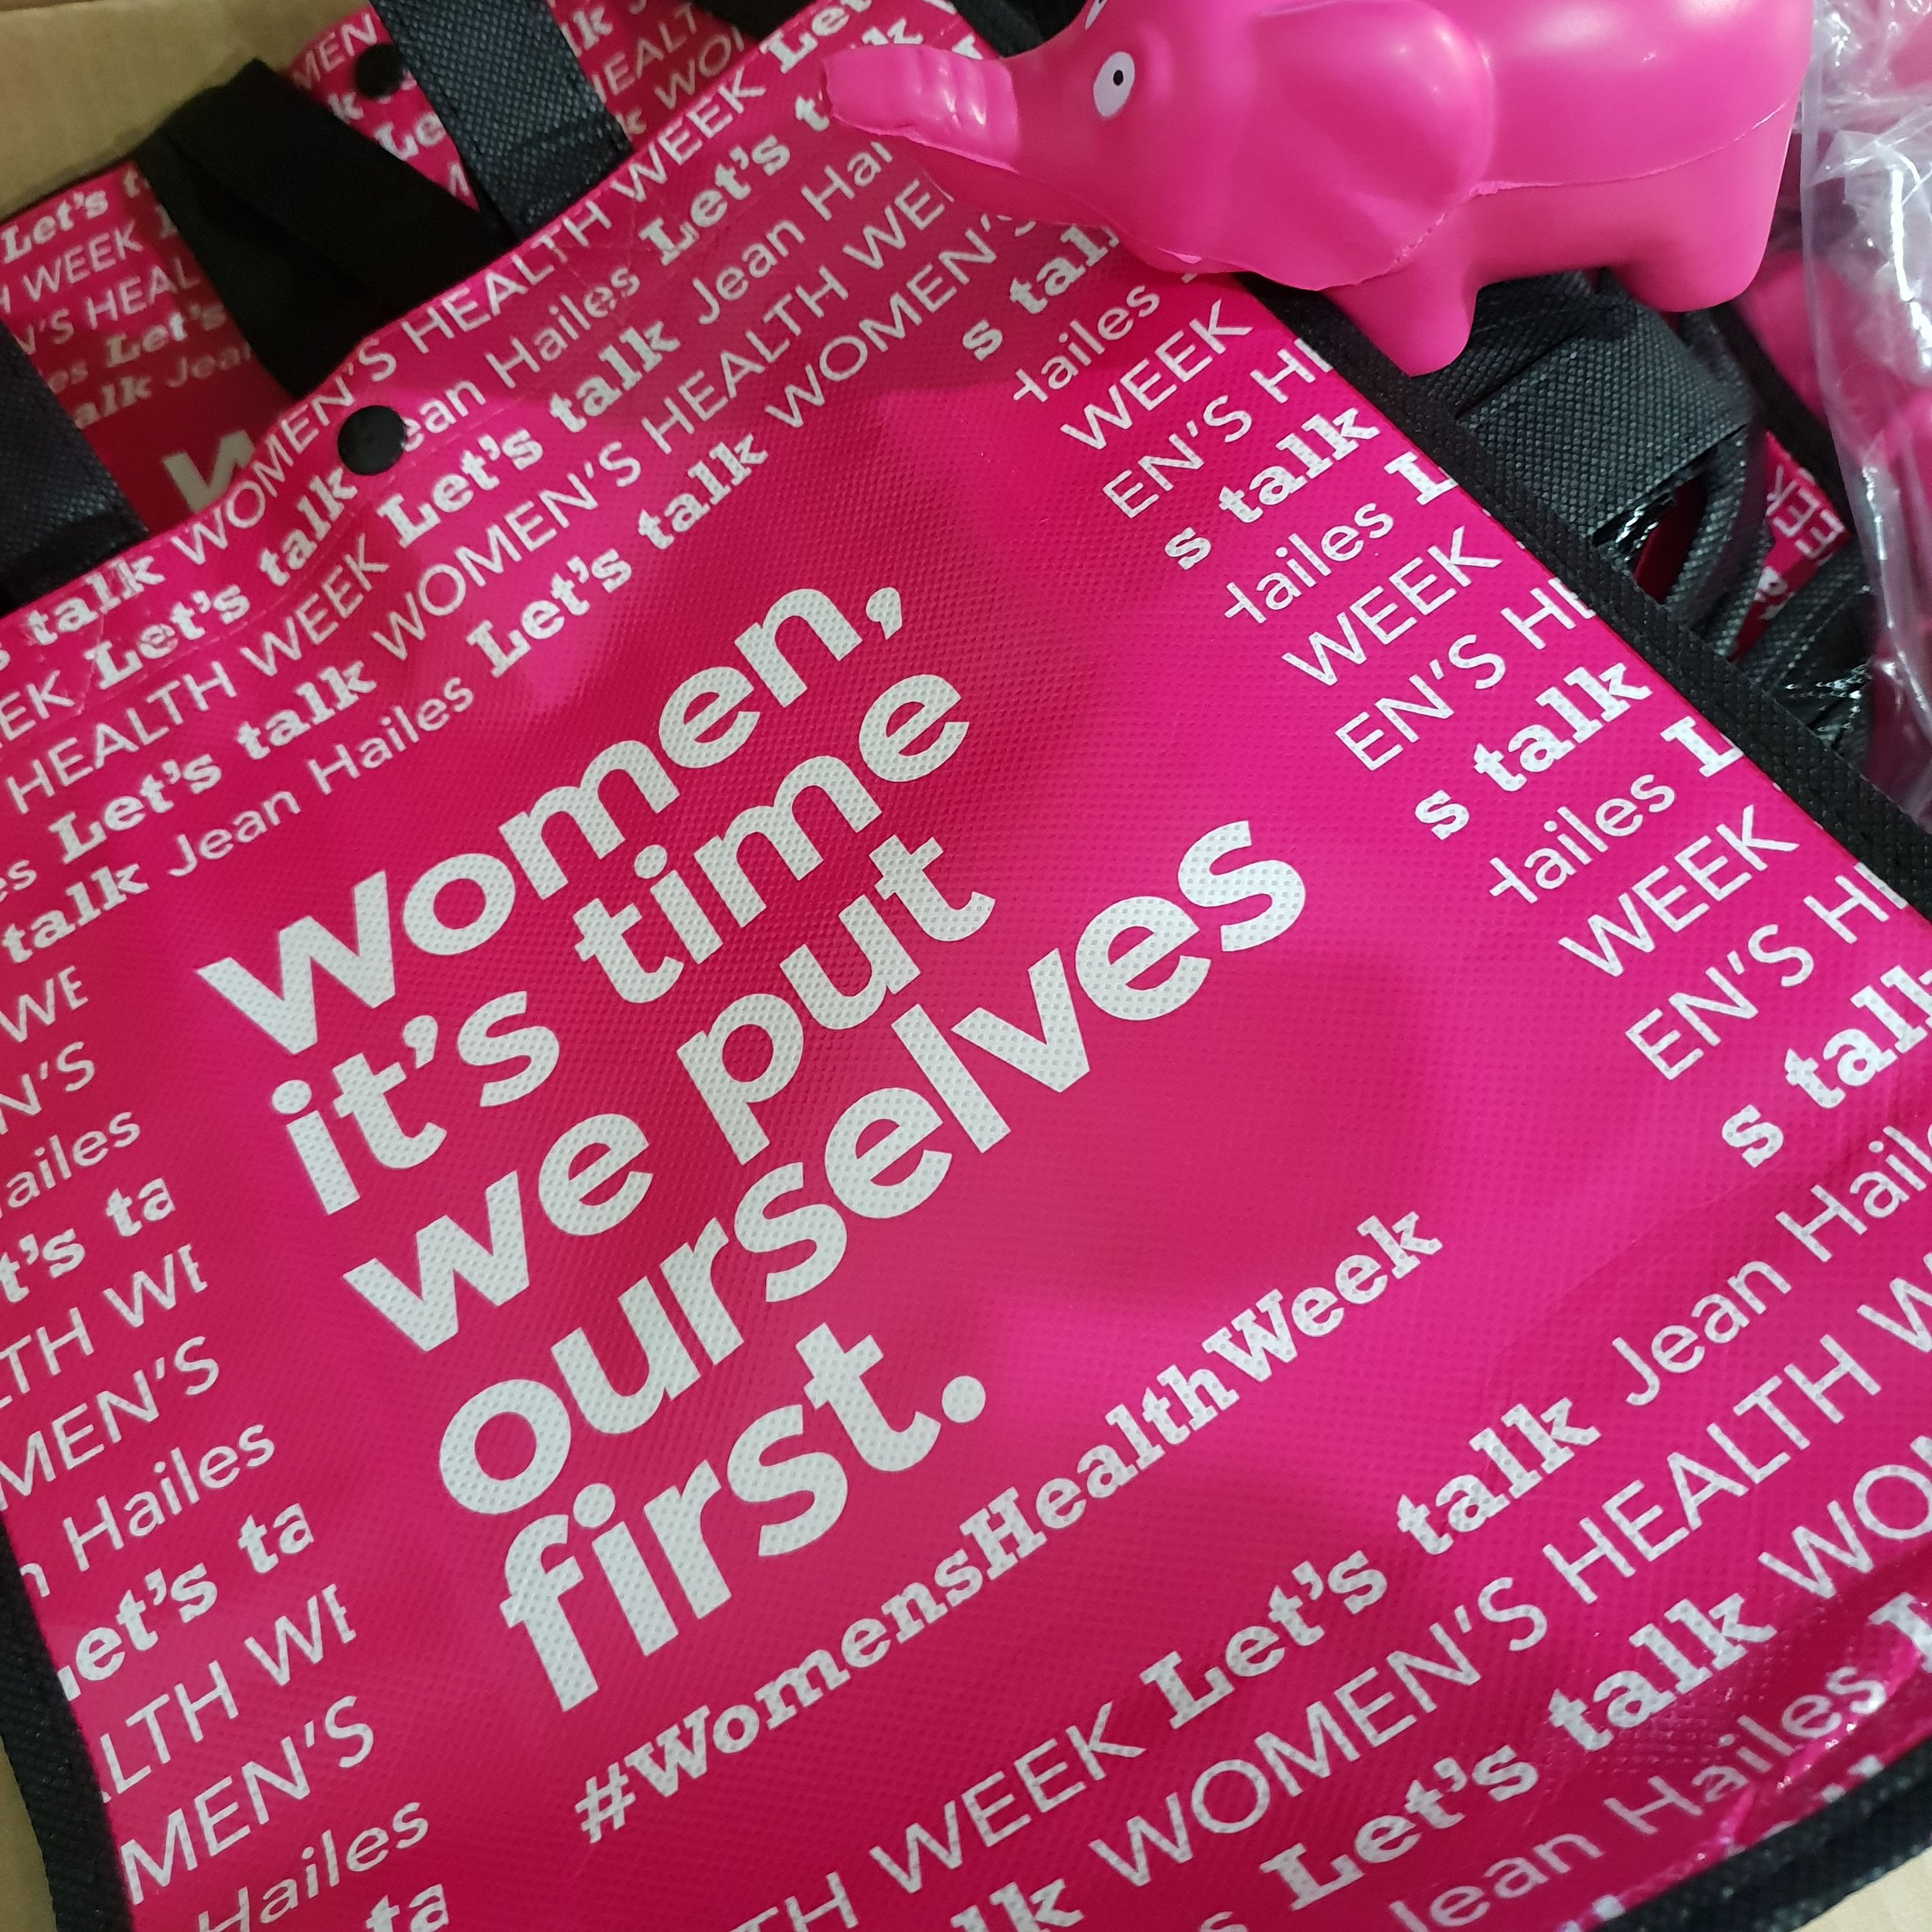 Our work this month supports promoting #WomensHealthWeek - Women, it's time we put ourselves first.